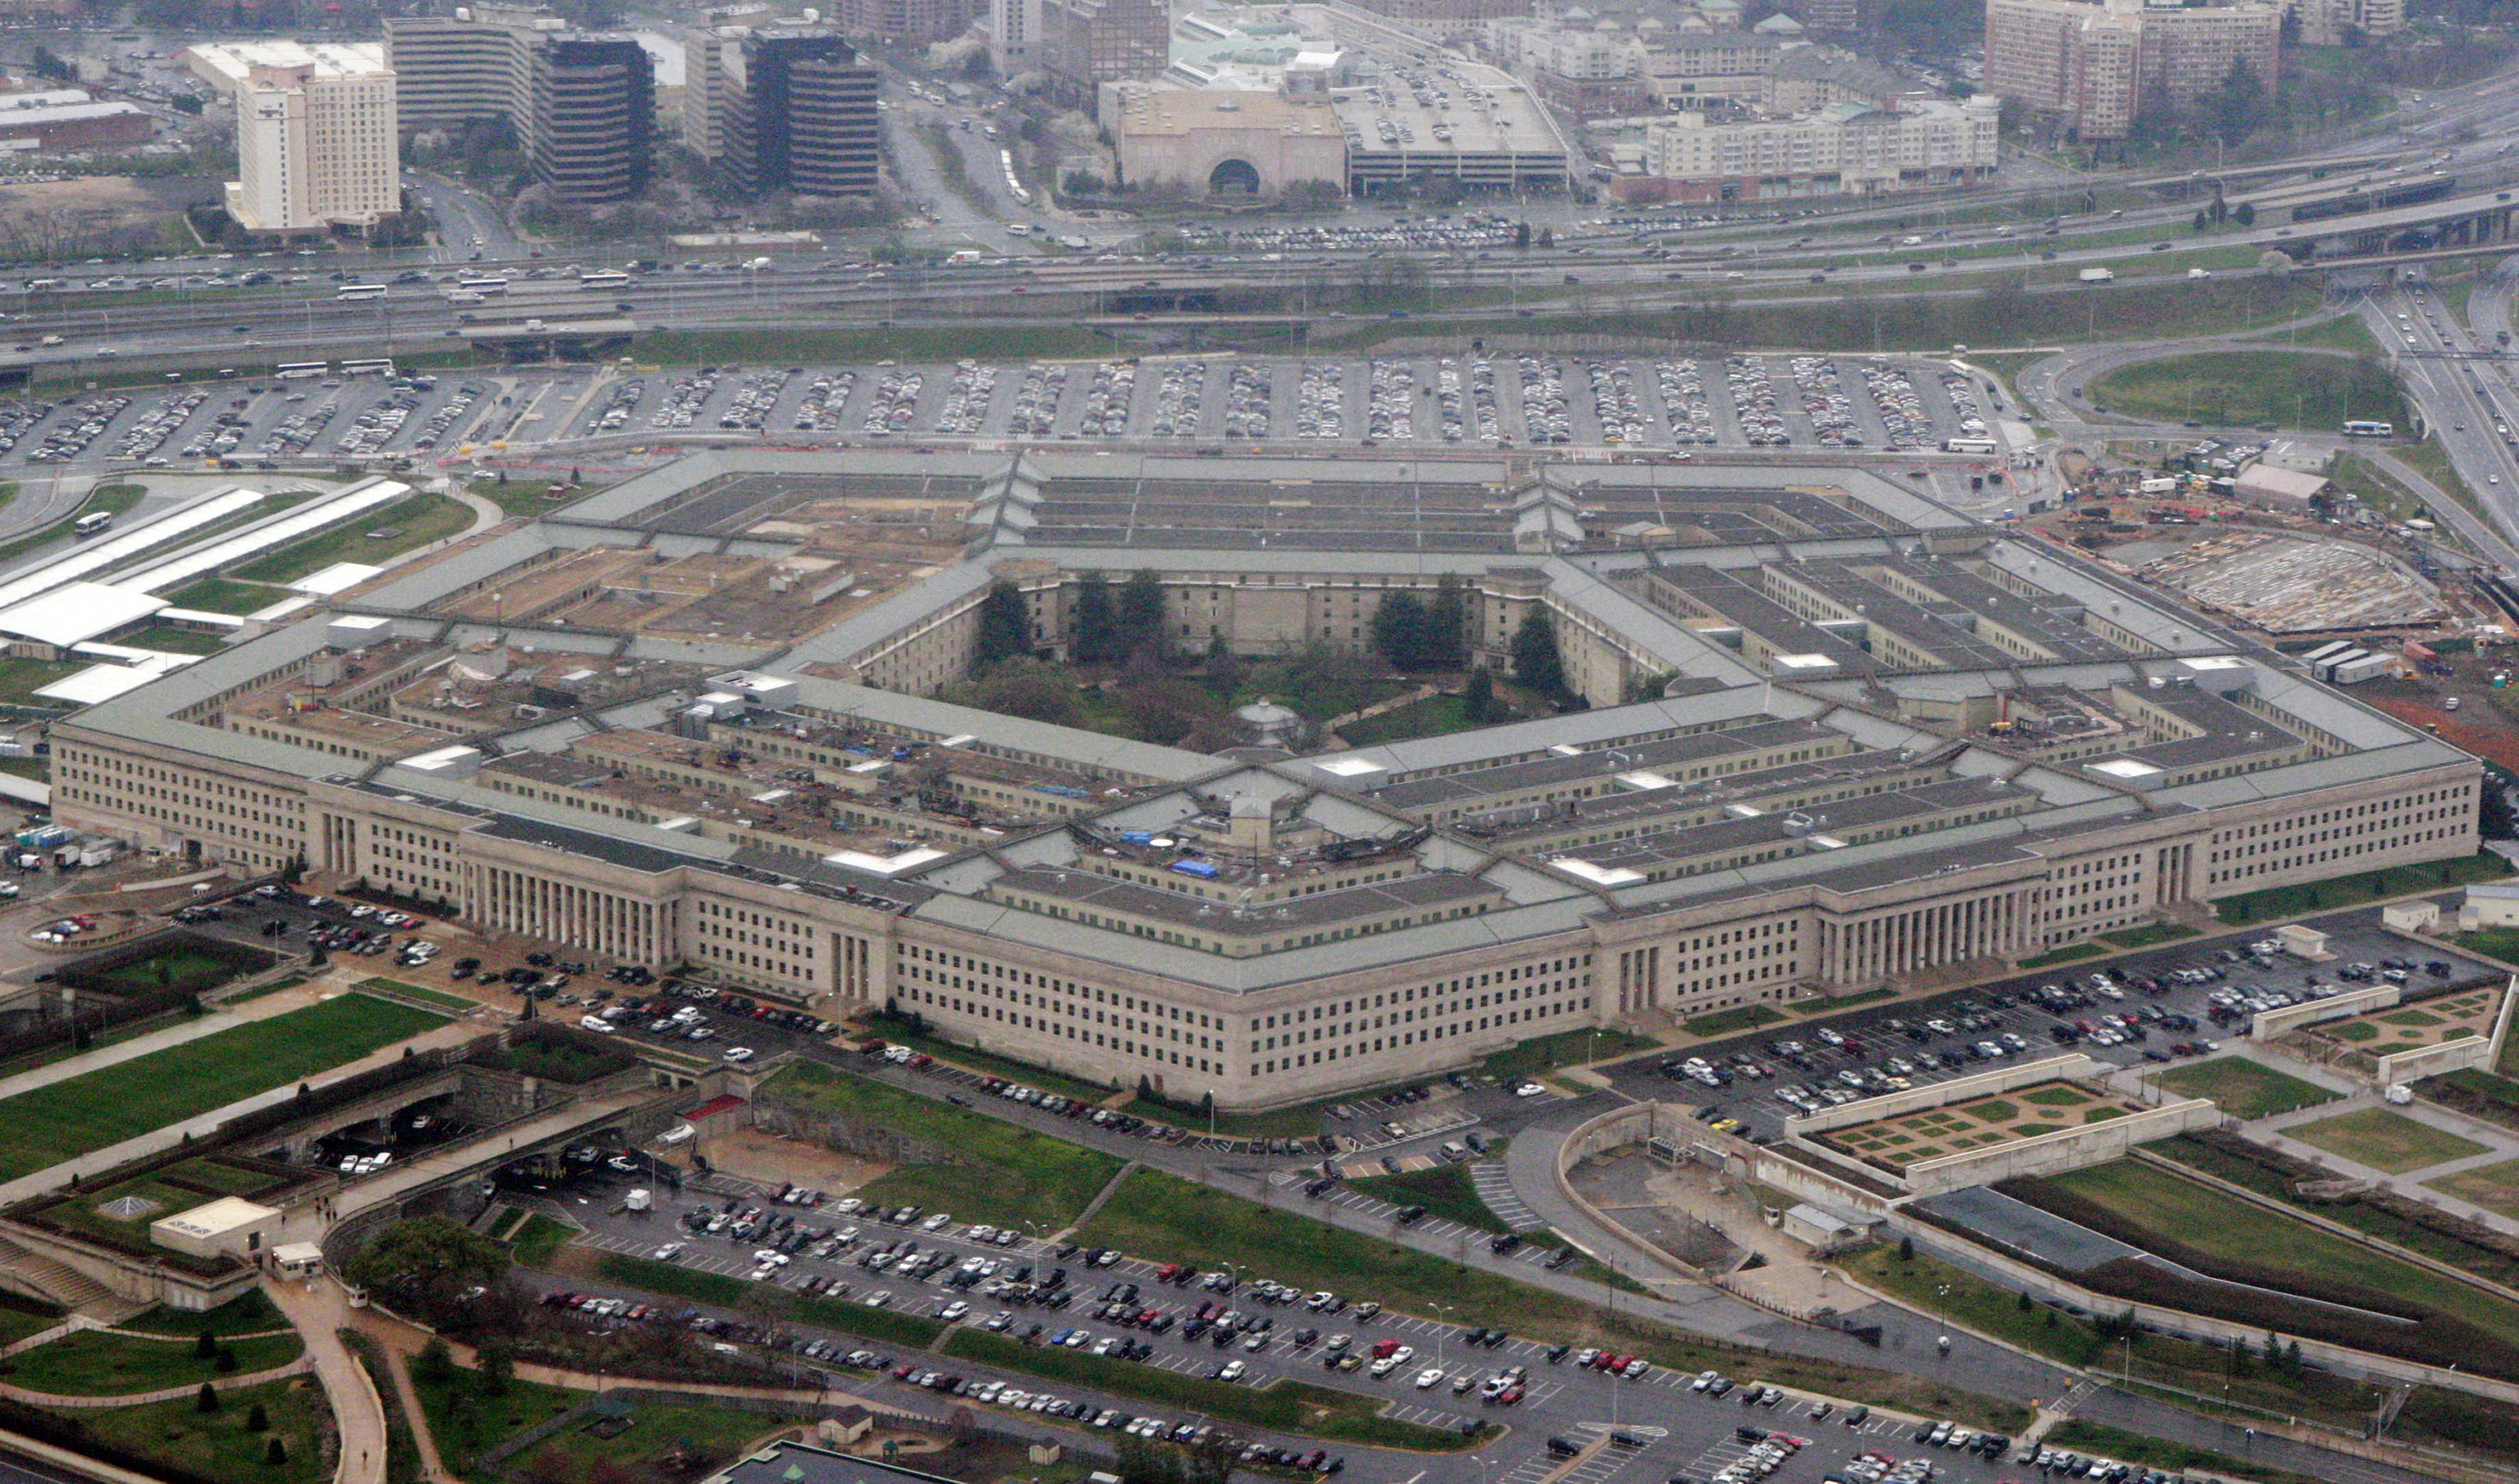 'National imperative': Army's AI Task Force, Carnegie Mellon partner on mind-blowing experiments